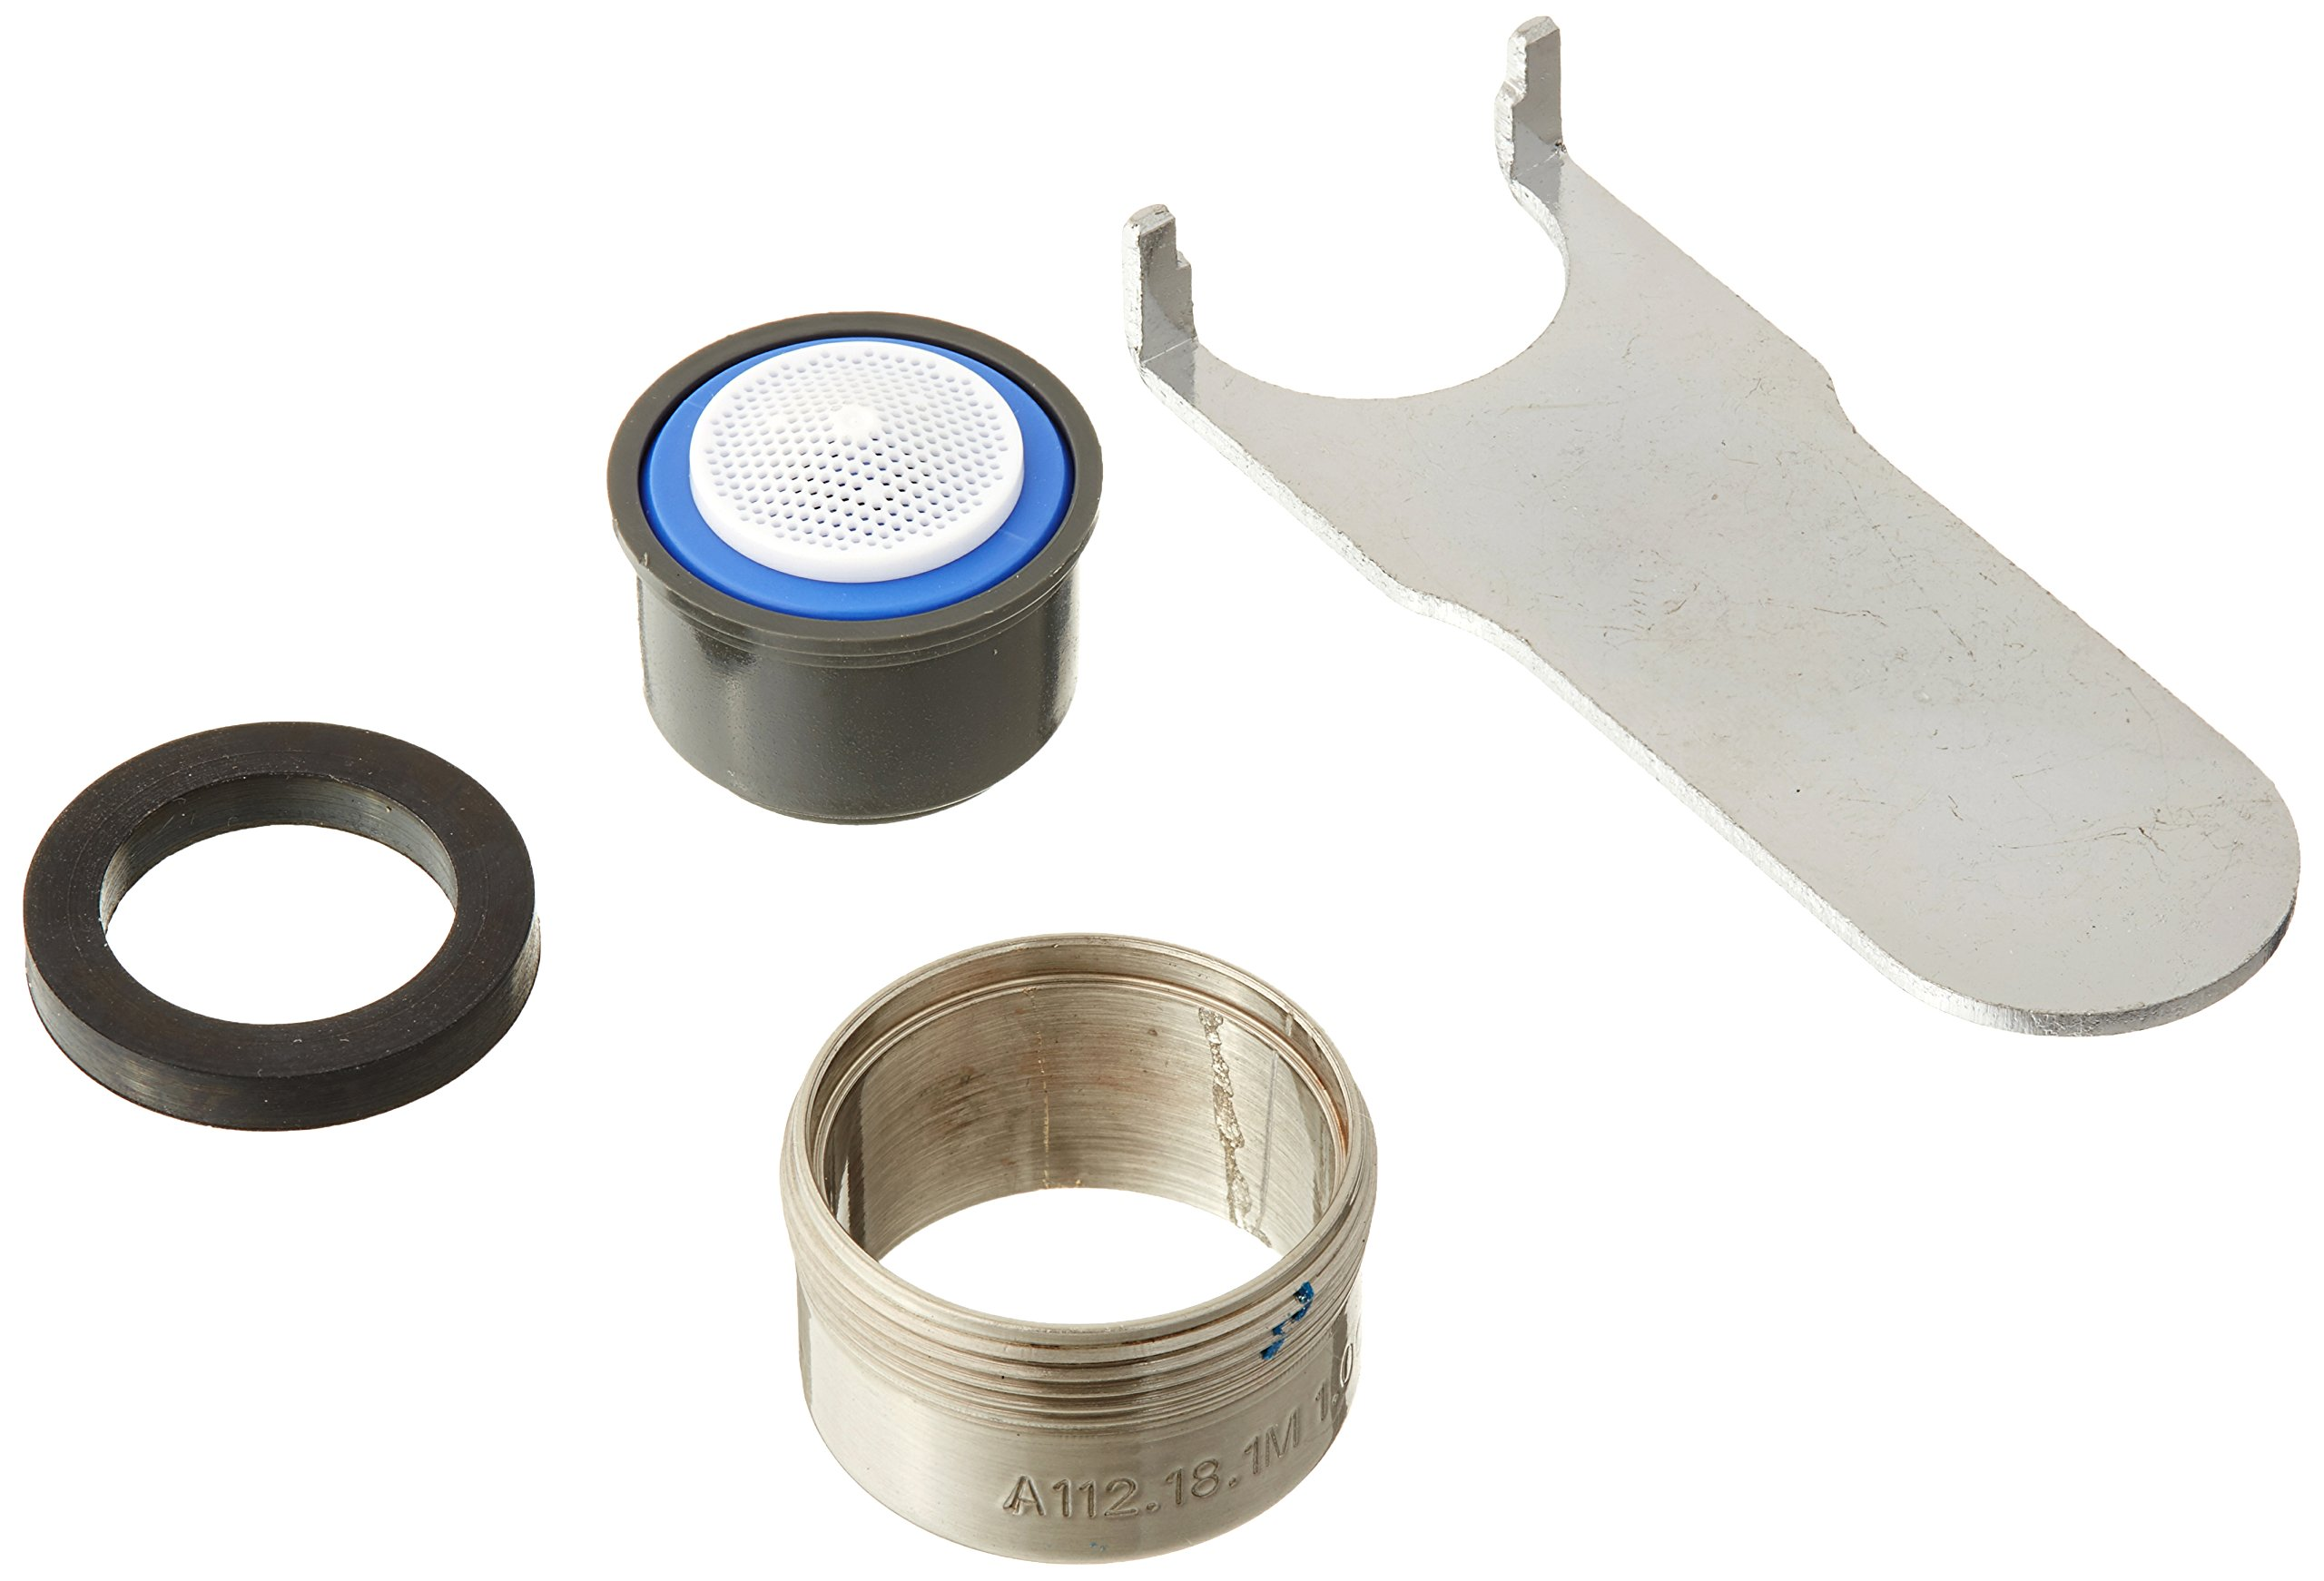 Danze DA613082NBN Standard Male Faucet Aerator Kit with Spray Flow Pattern, 1.0 GPM, Brushed Nickel